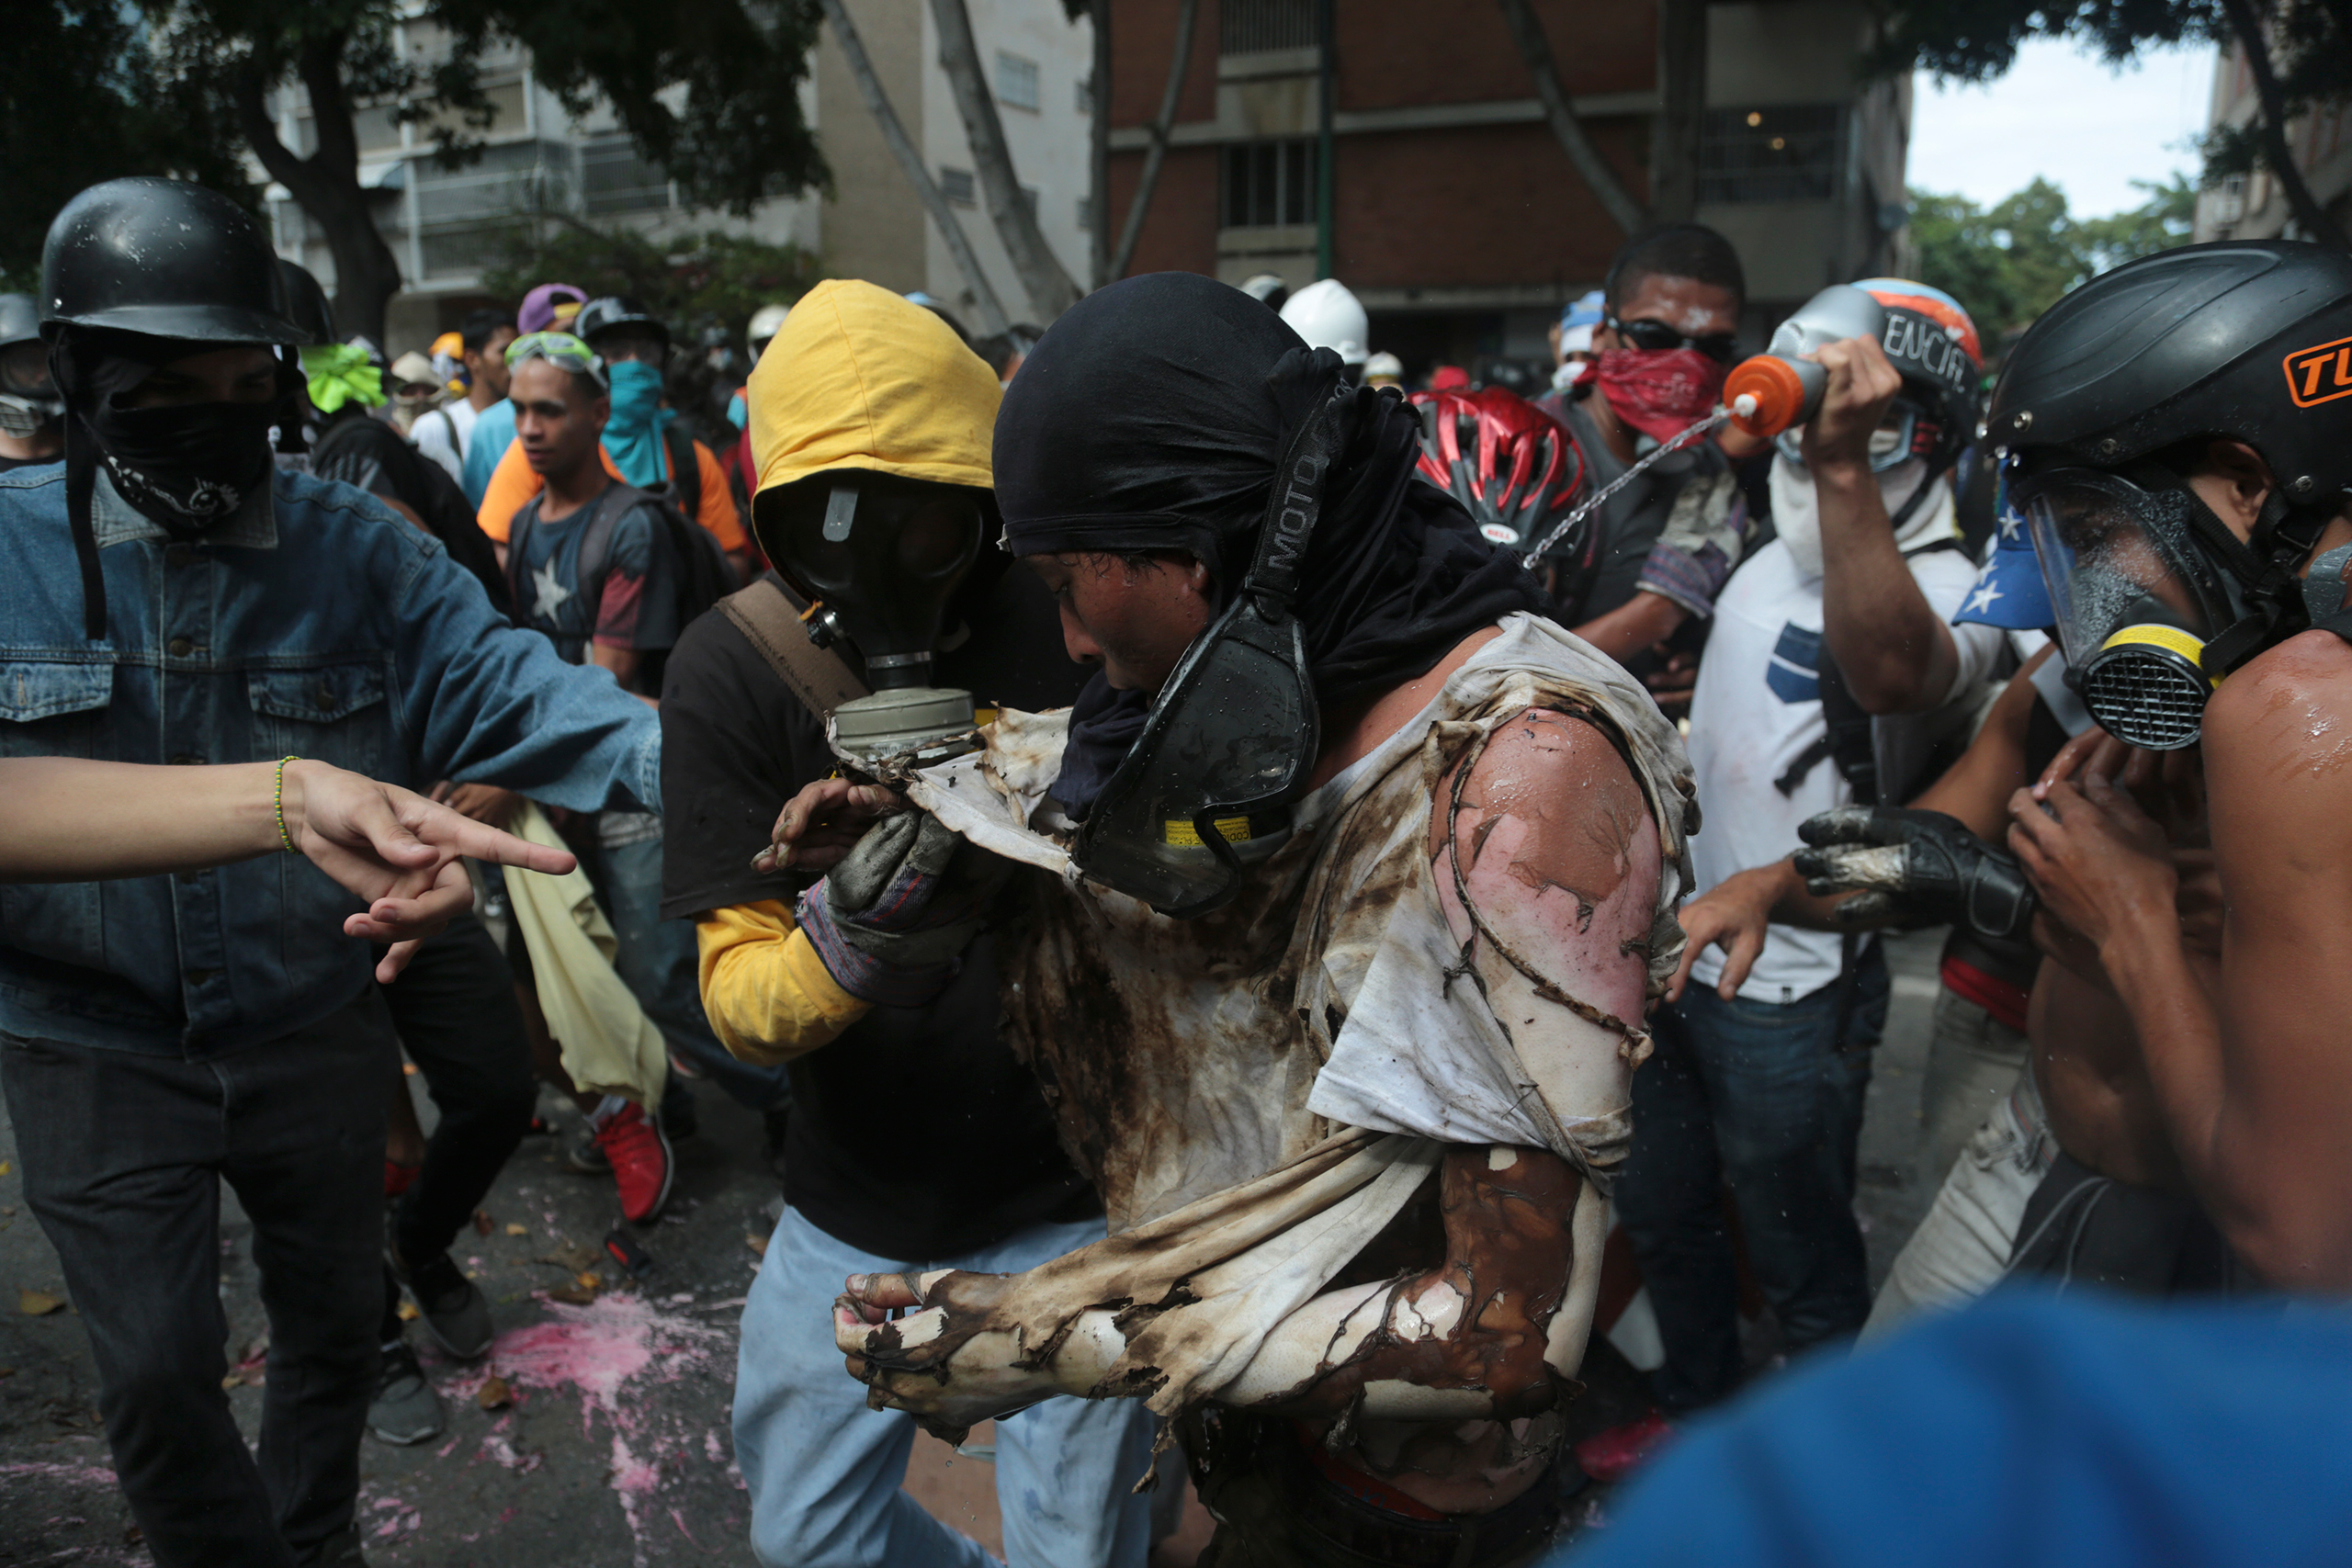 The man is aided by fellow protesters after he was burnt during a clash.